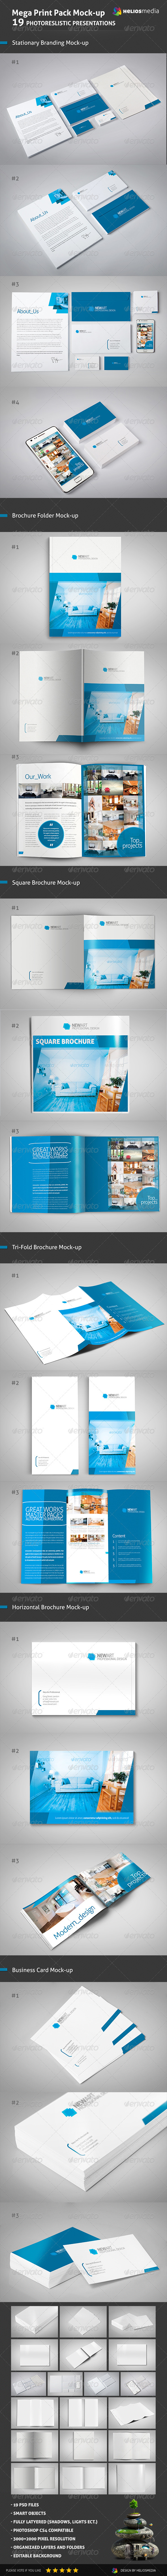 GraphicRiver Mega Print Pack Mock-up 5427392